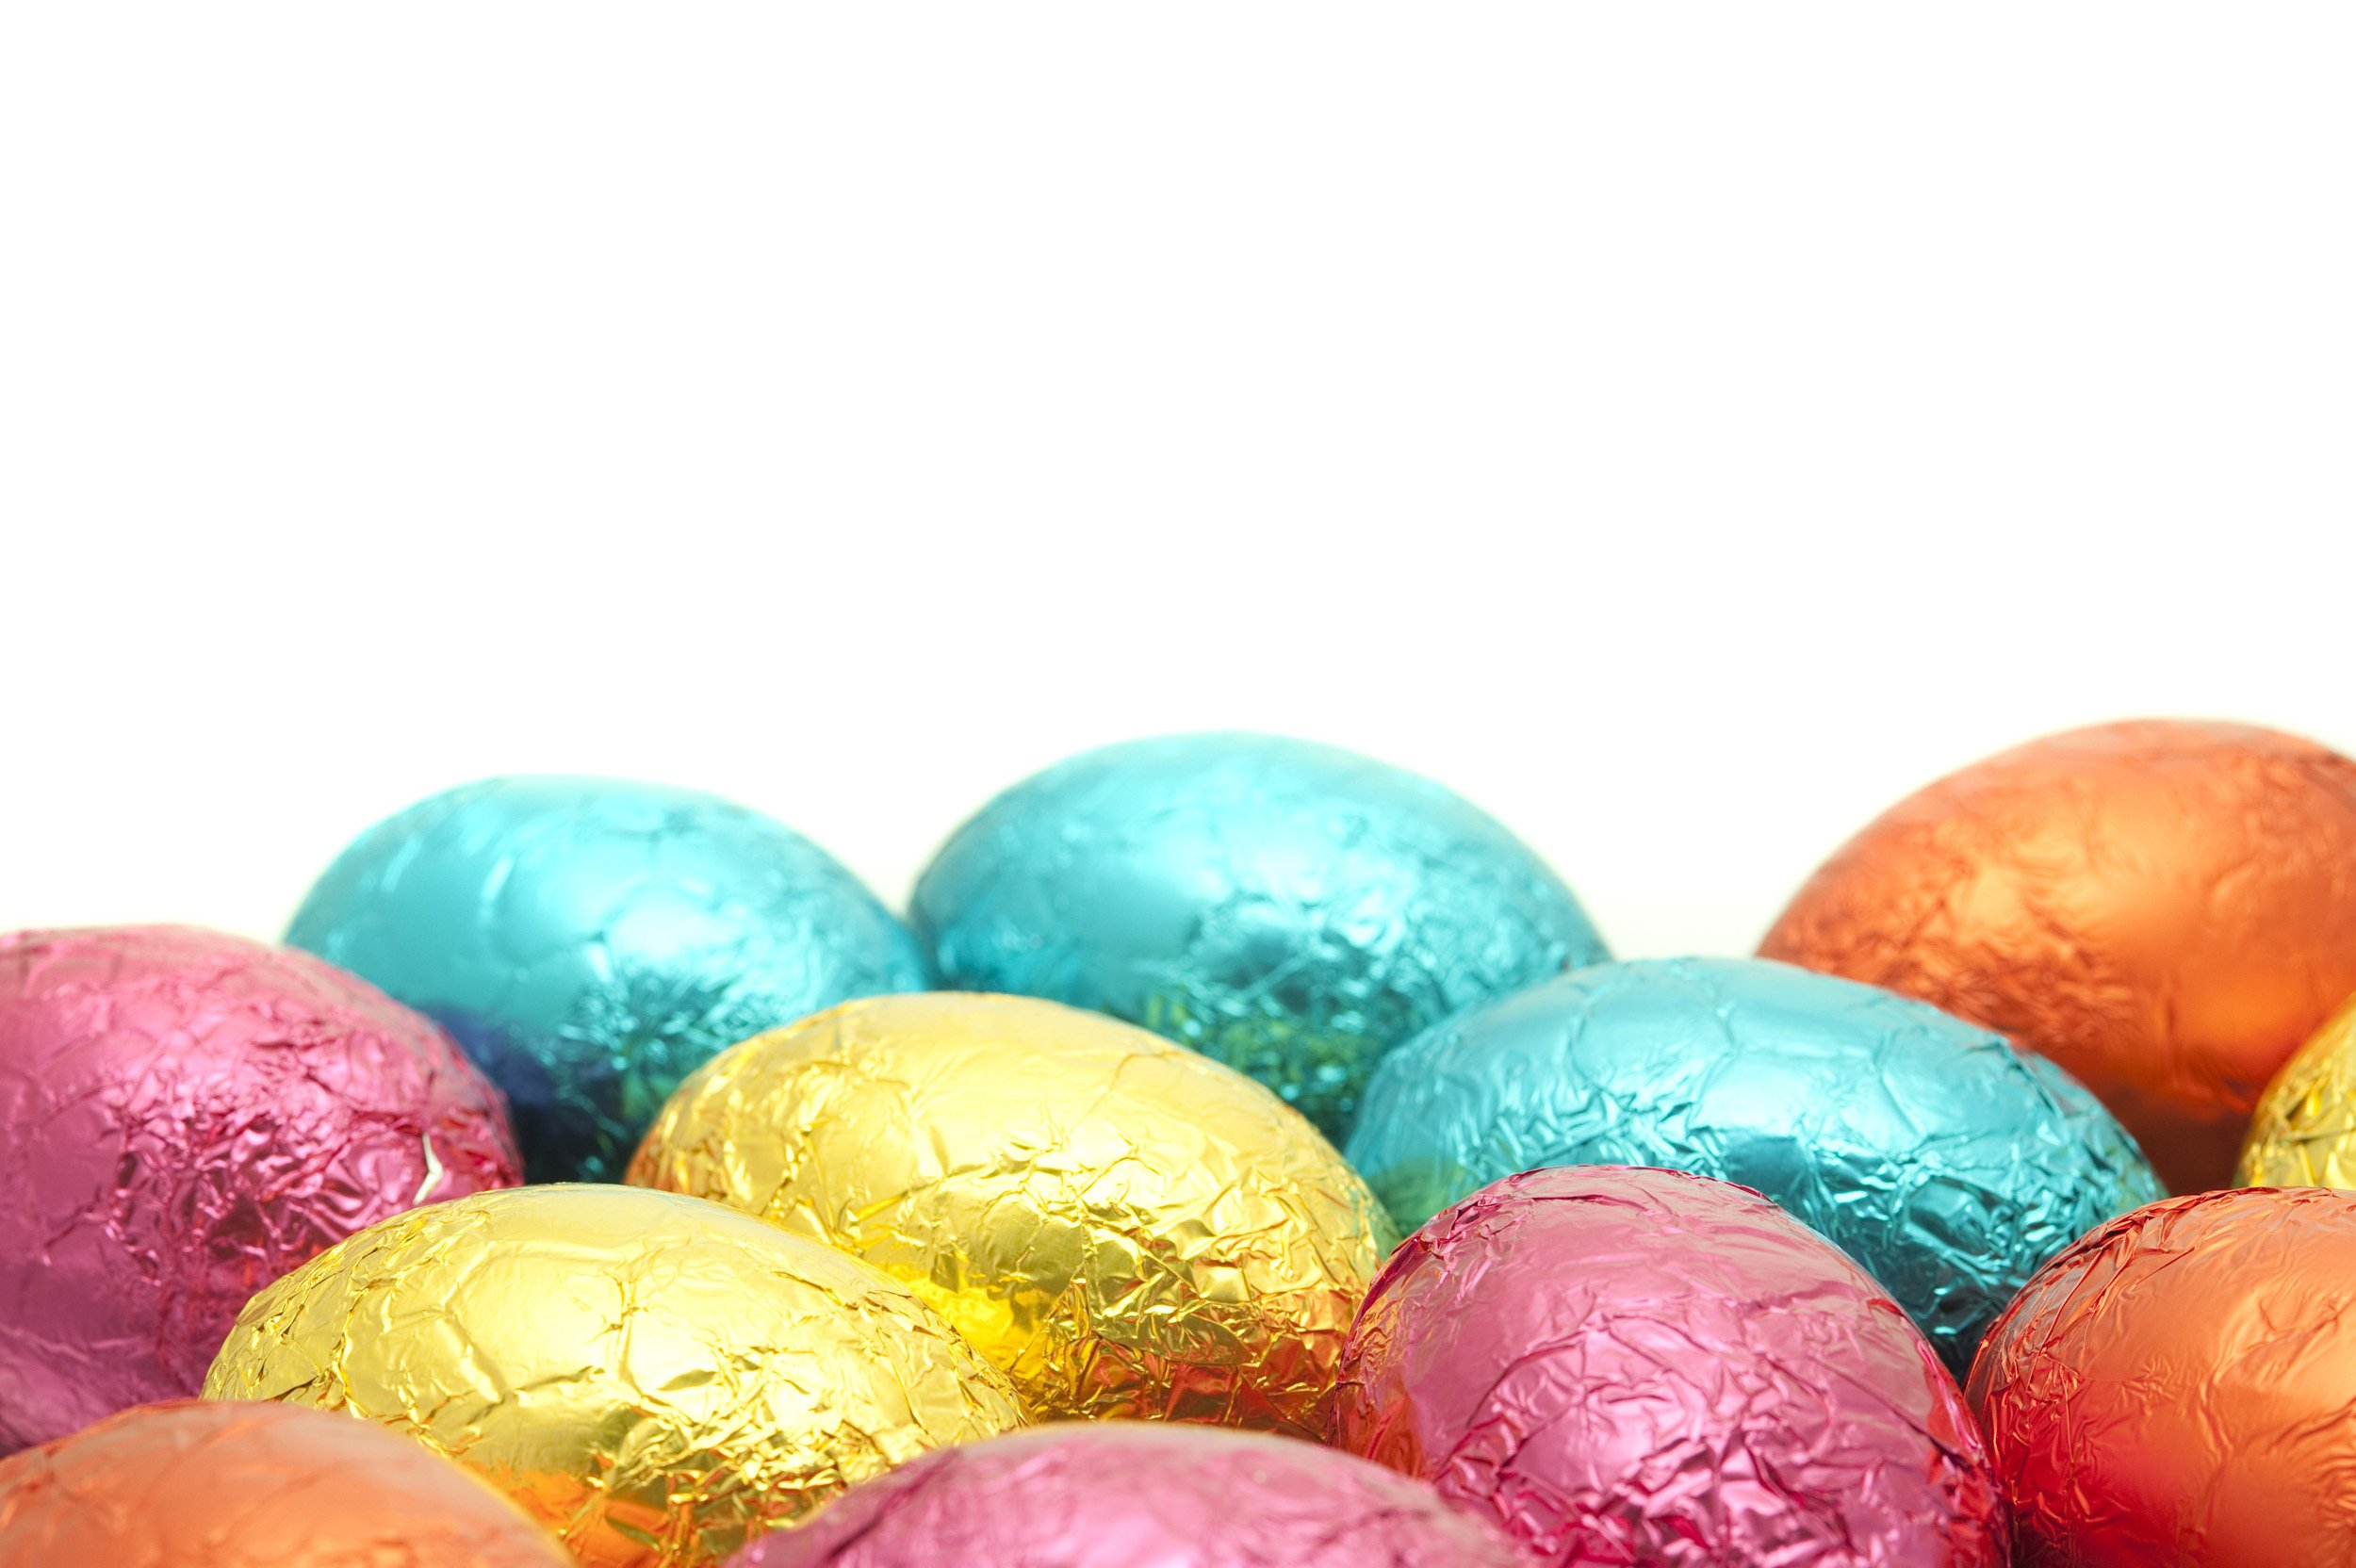 Easter Egg Background Creative Commons Stock Image 2500x1664